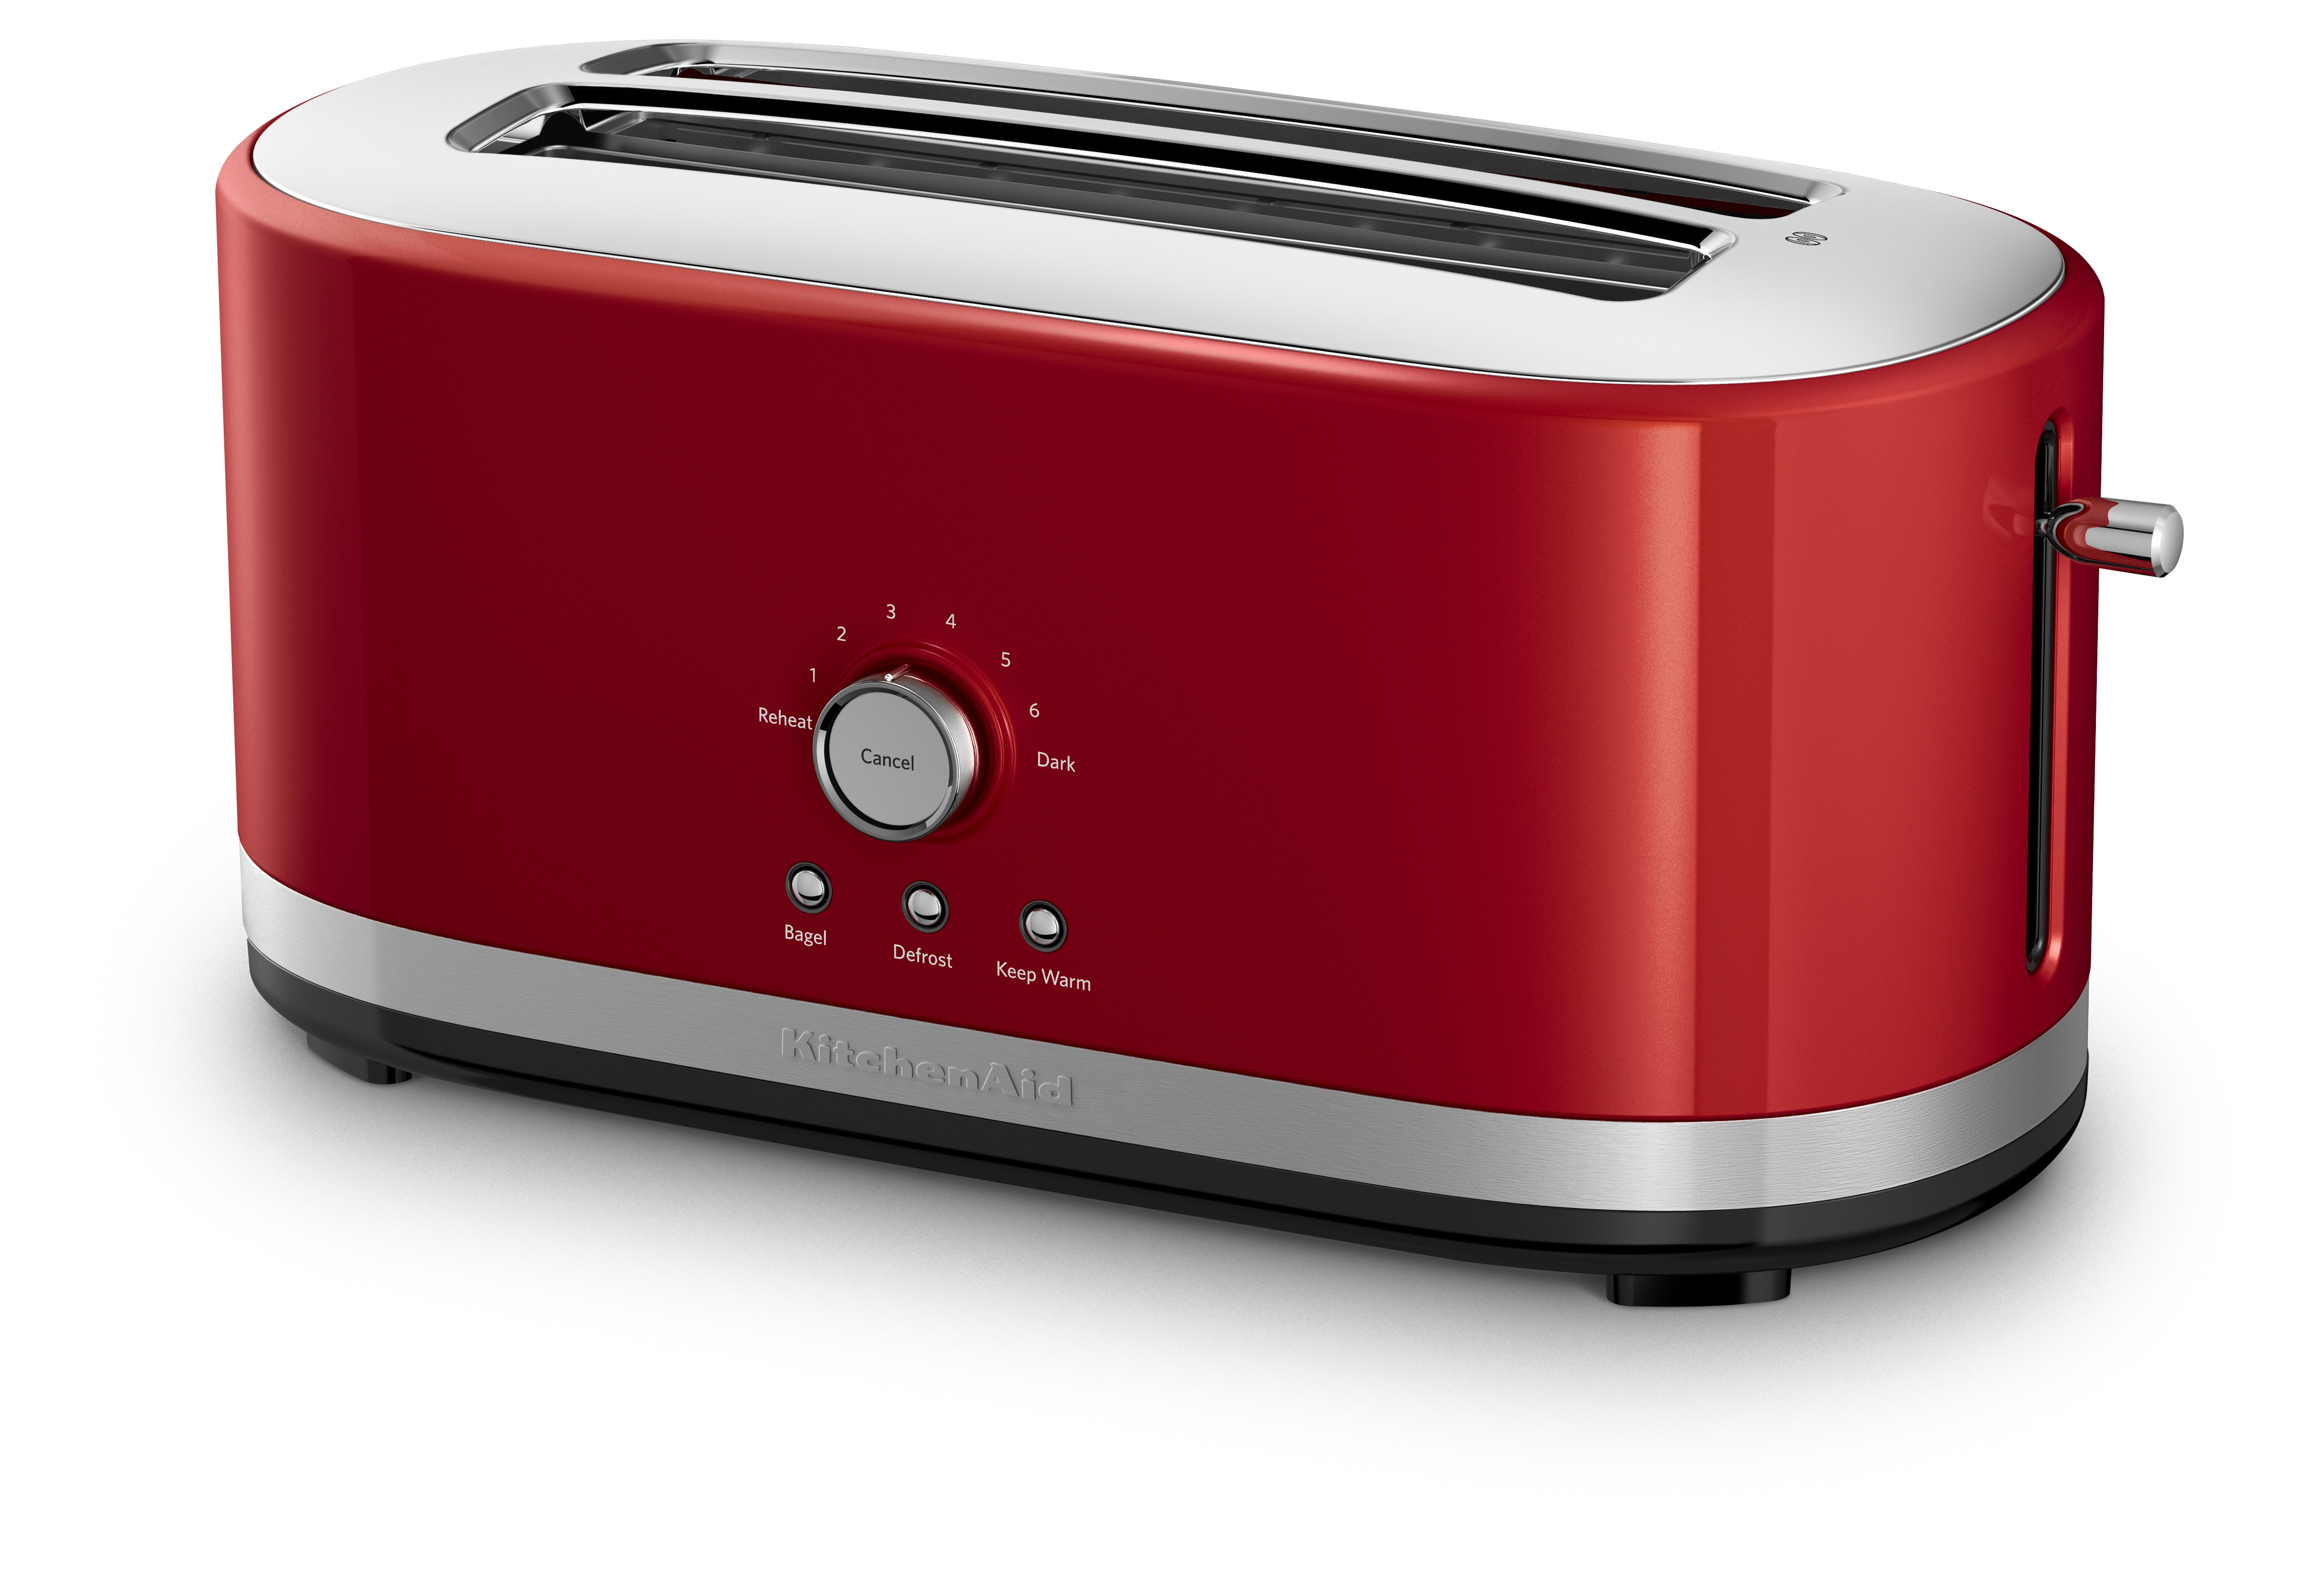 Kitchenaid long slot toaster canada poker sites that use paypal